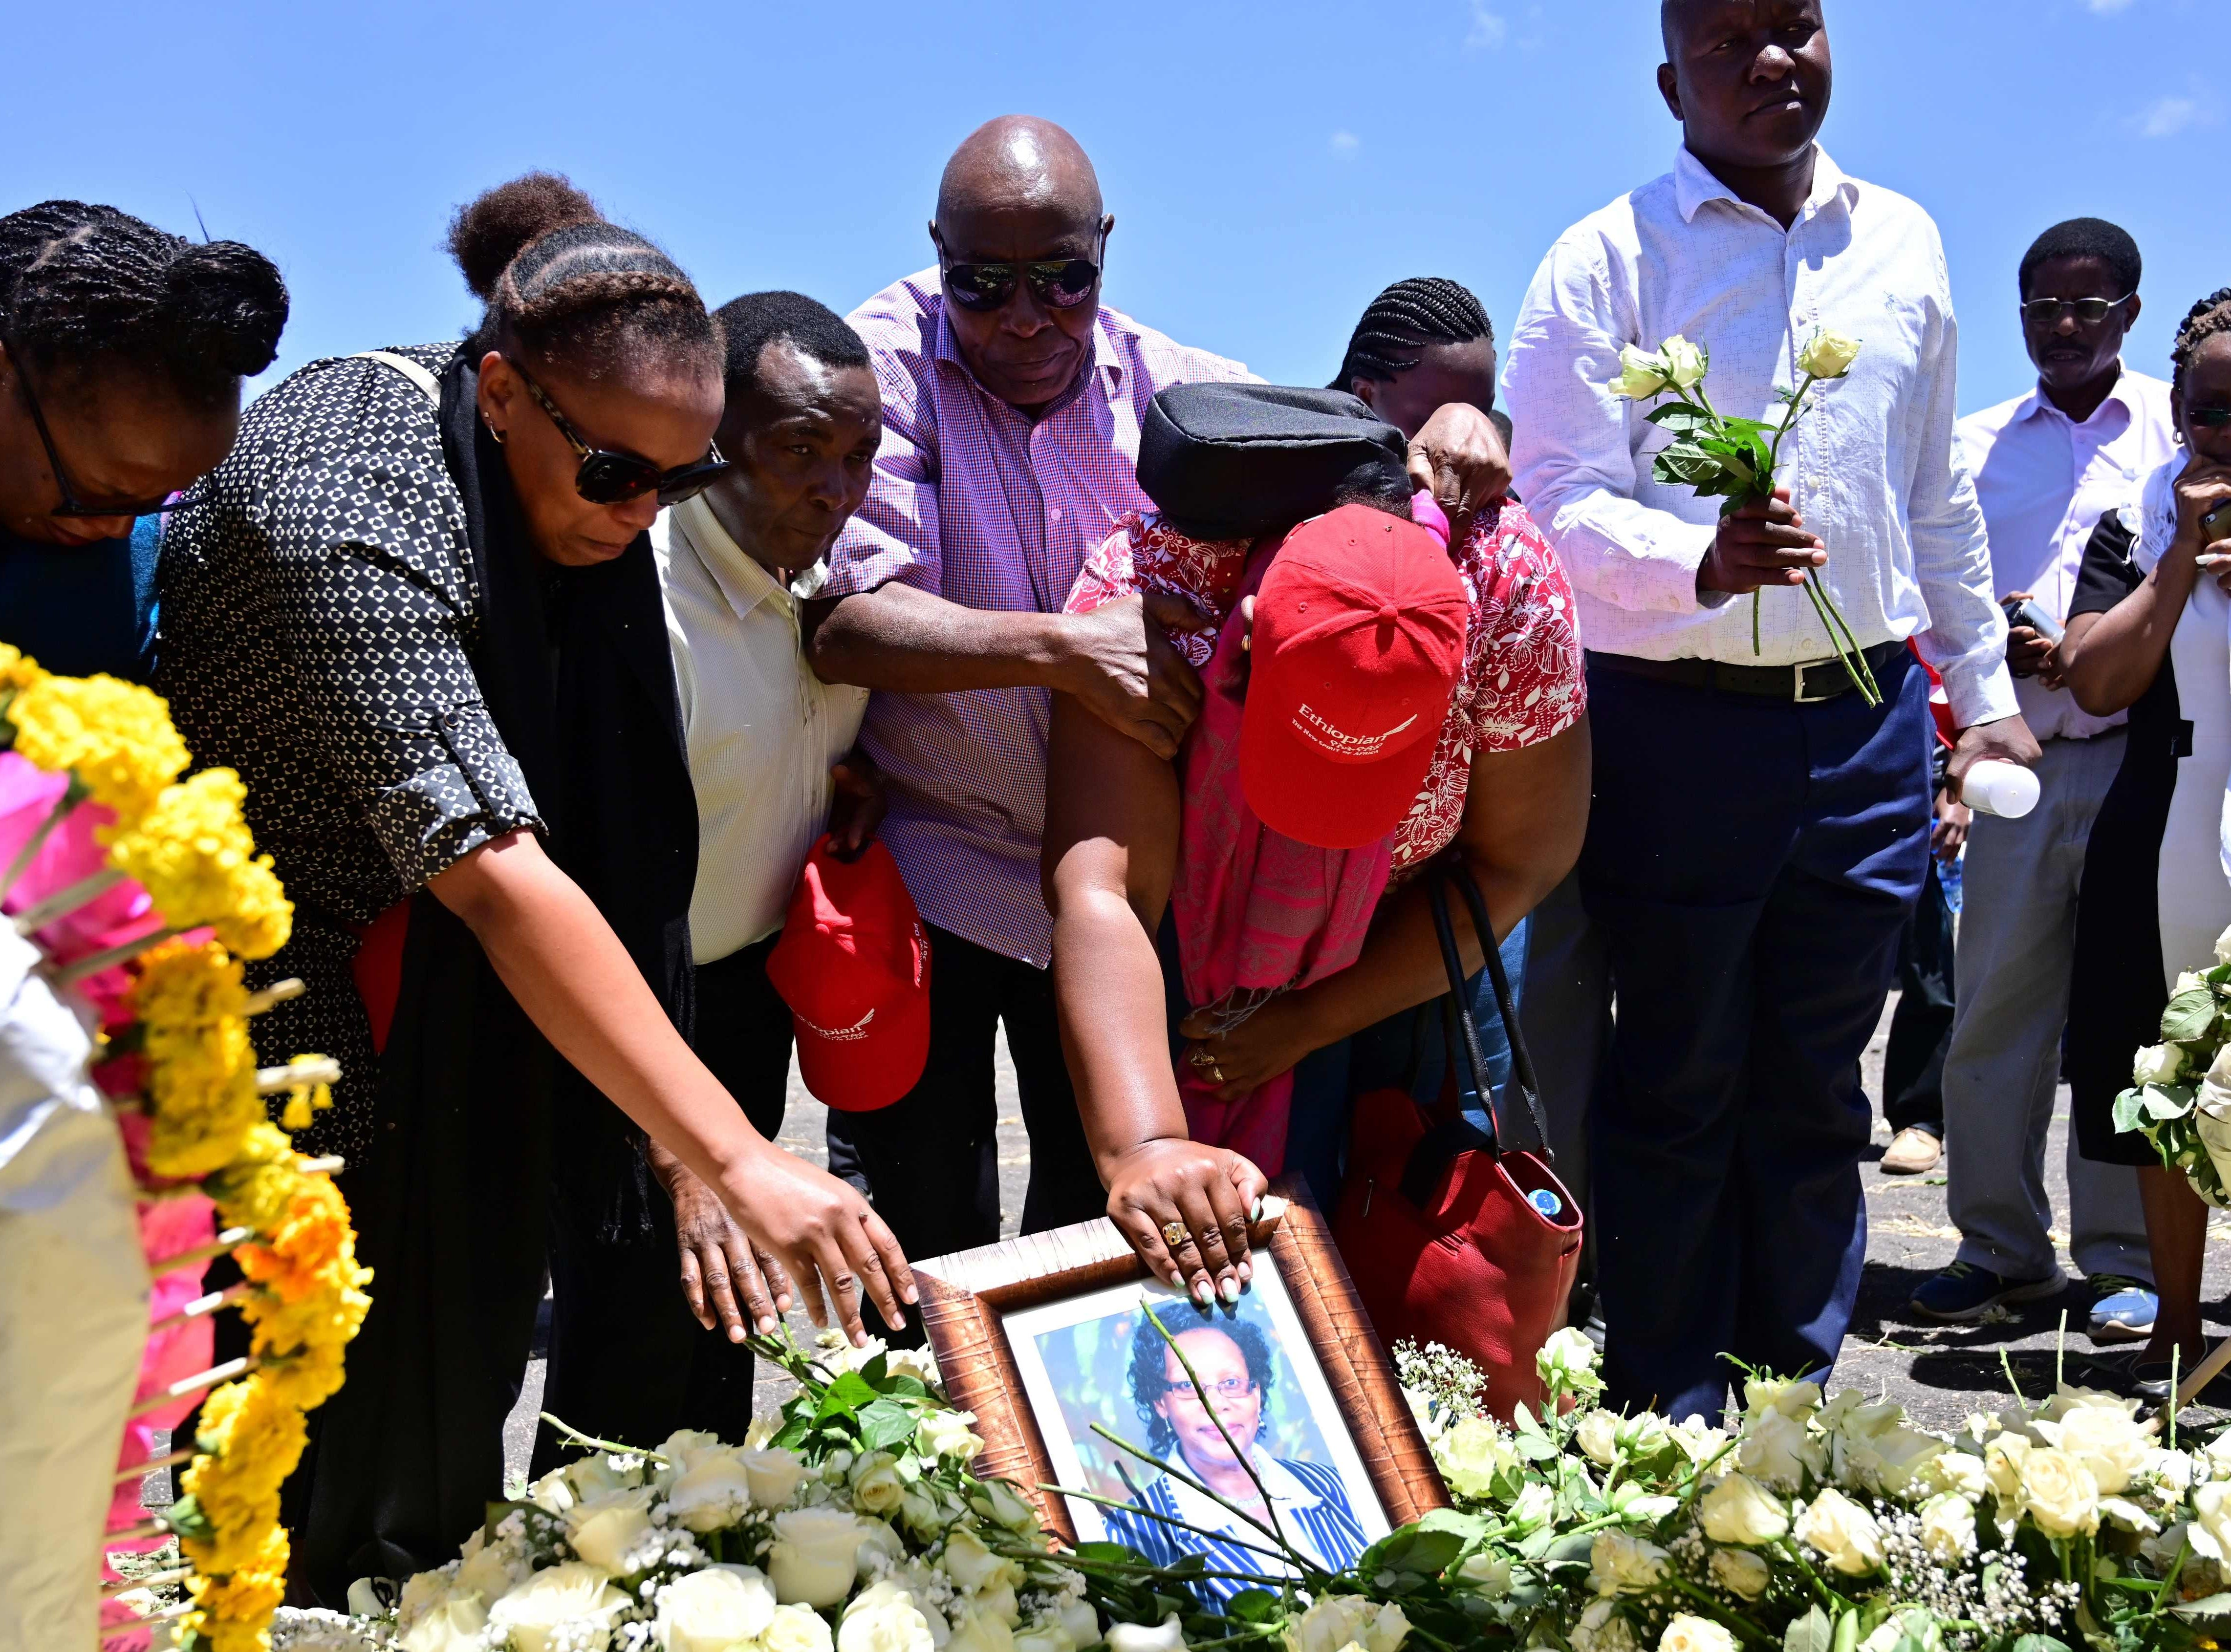 Families of victims from Kenya and Rwanda lay flowers as they visit the crash site.